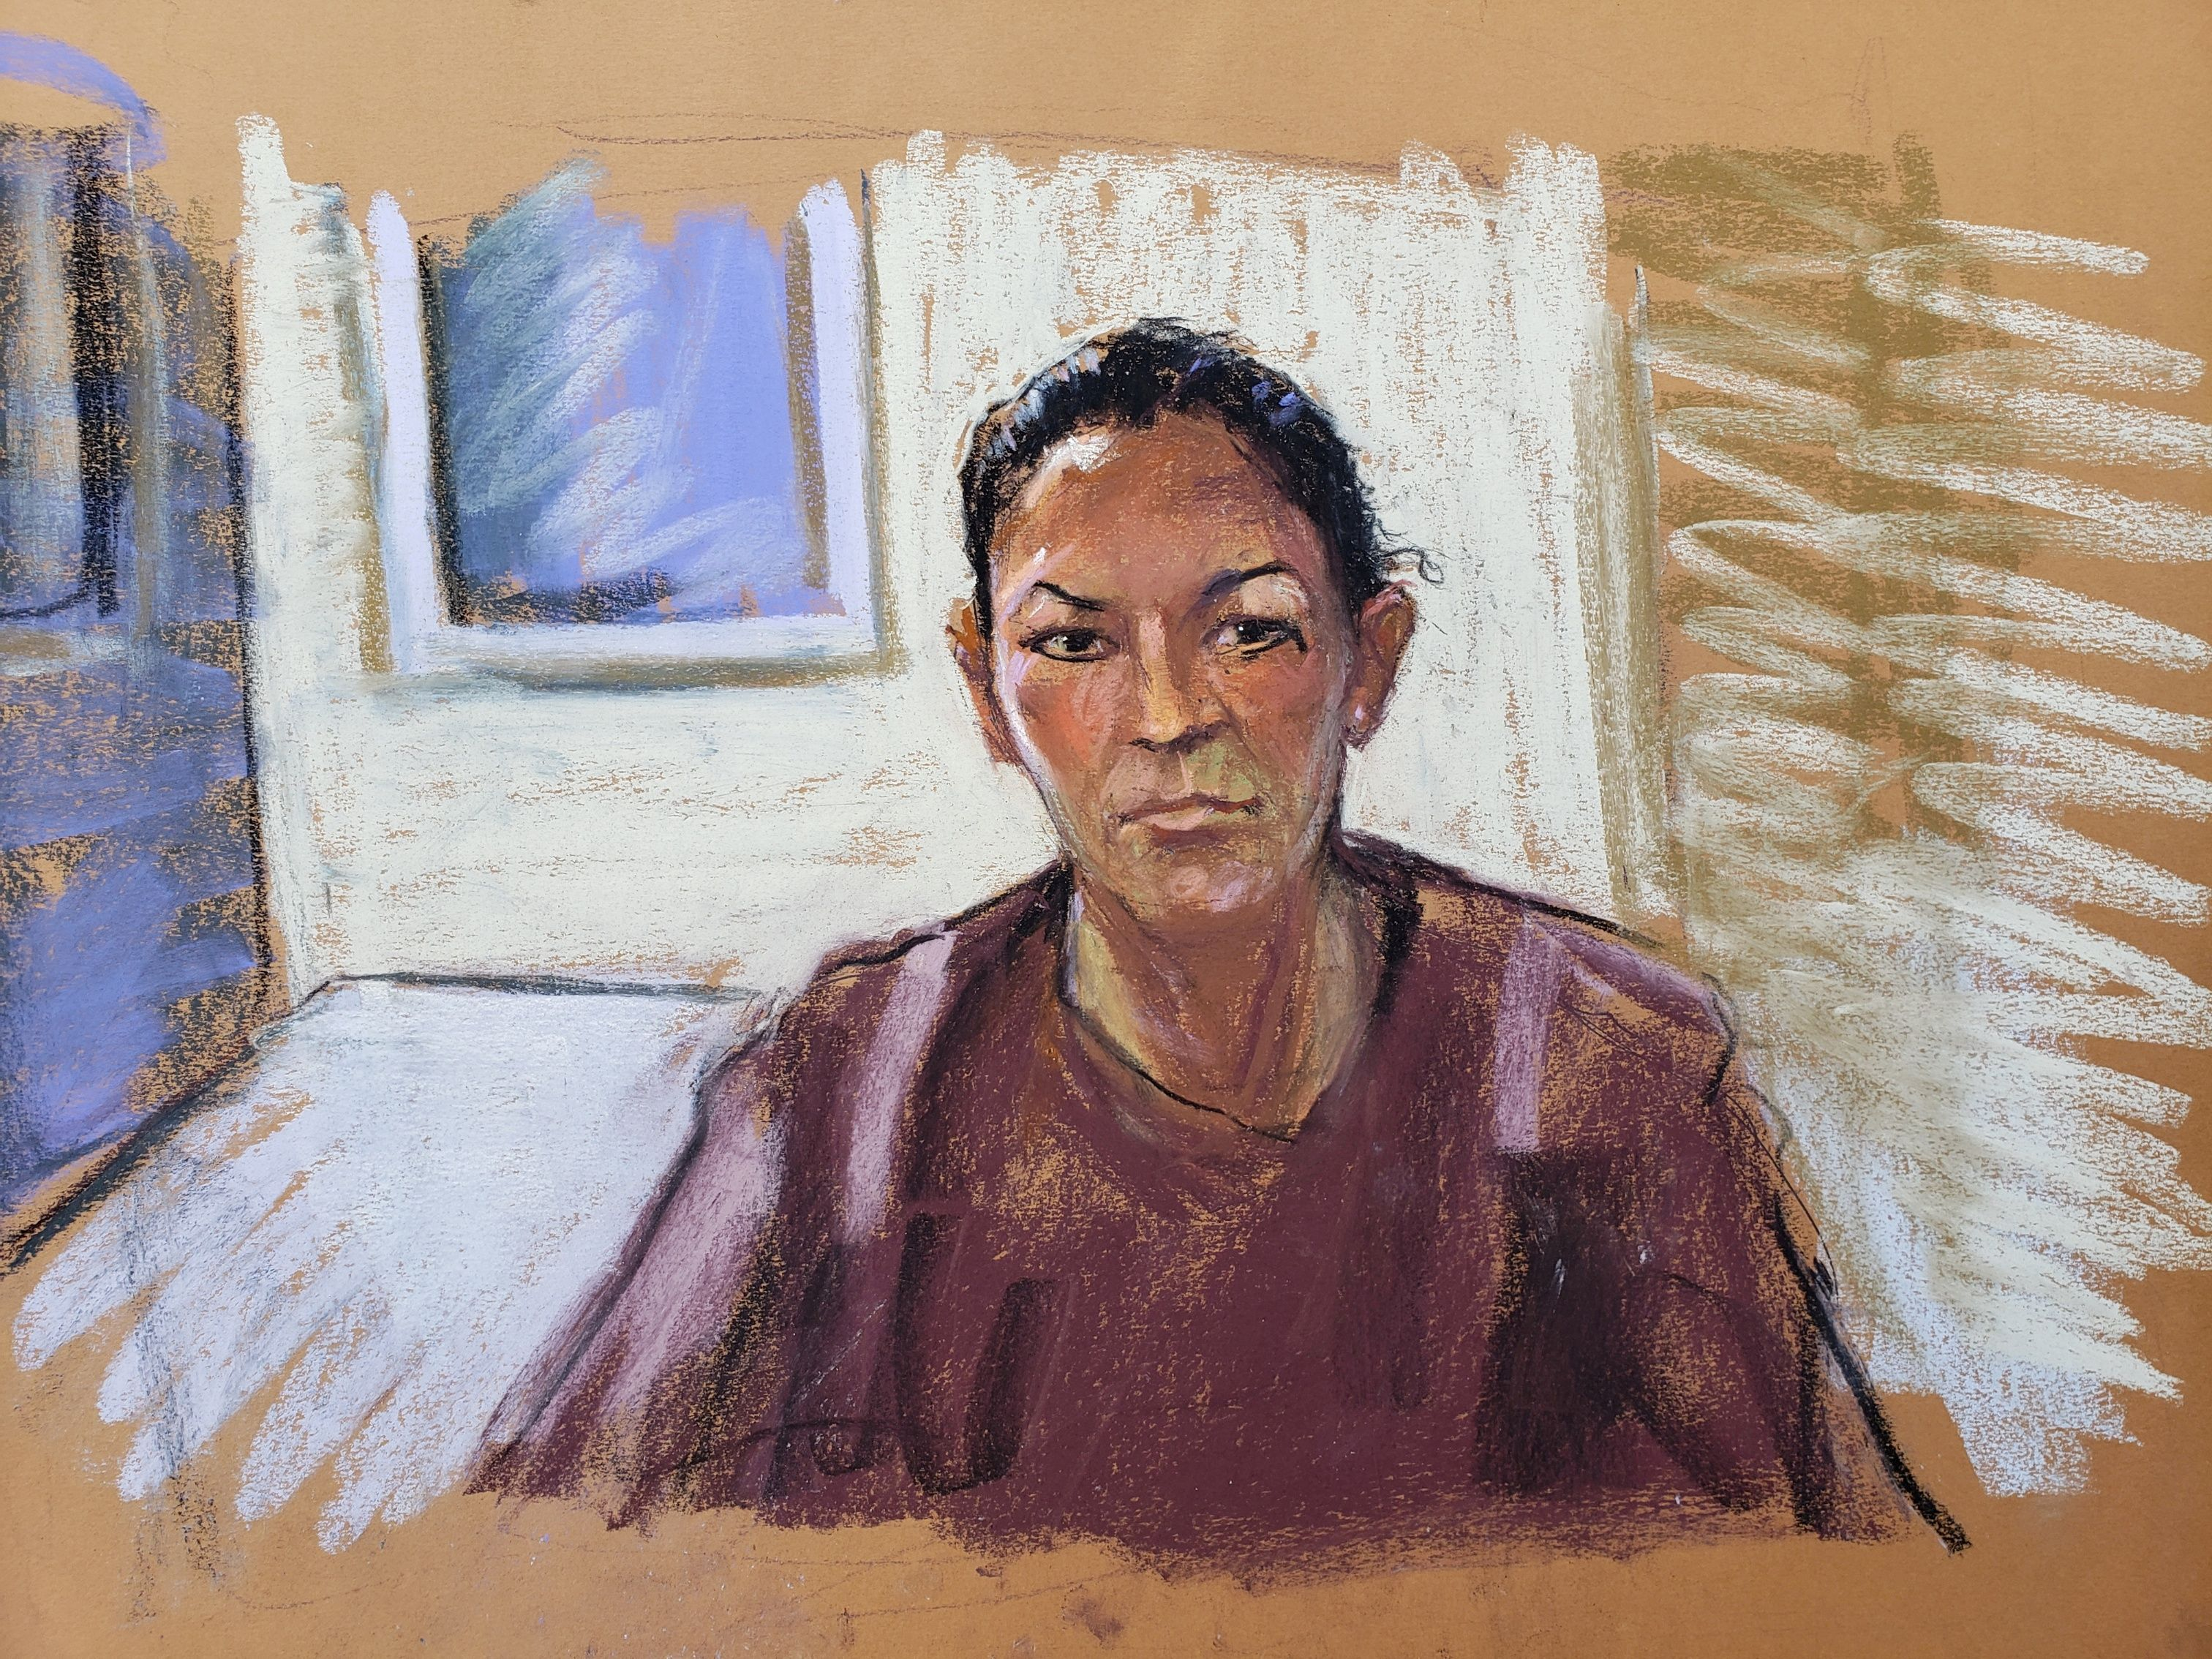 Ghislaine Maxwell appears via video link during her arraignment hearing where she was denied bail for her role aiding Jeffrey Epstein to recruit and eventually abuse of minor girls, in Manhattan Federal Court, in the Manhattan borough of New York City, New York, U.S. July 14, 2020 in this courtroom sketch. REUTERS/Jane Rosenberg/File Photo